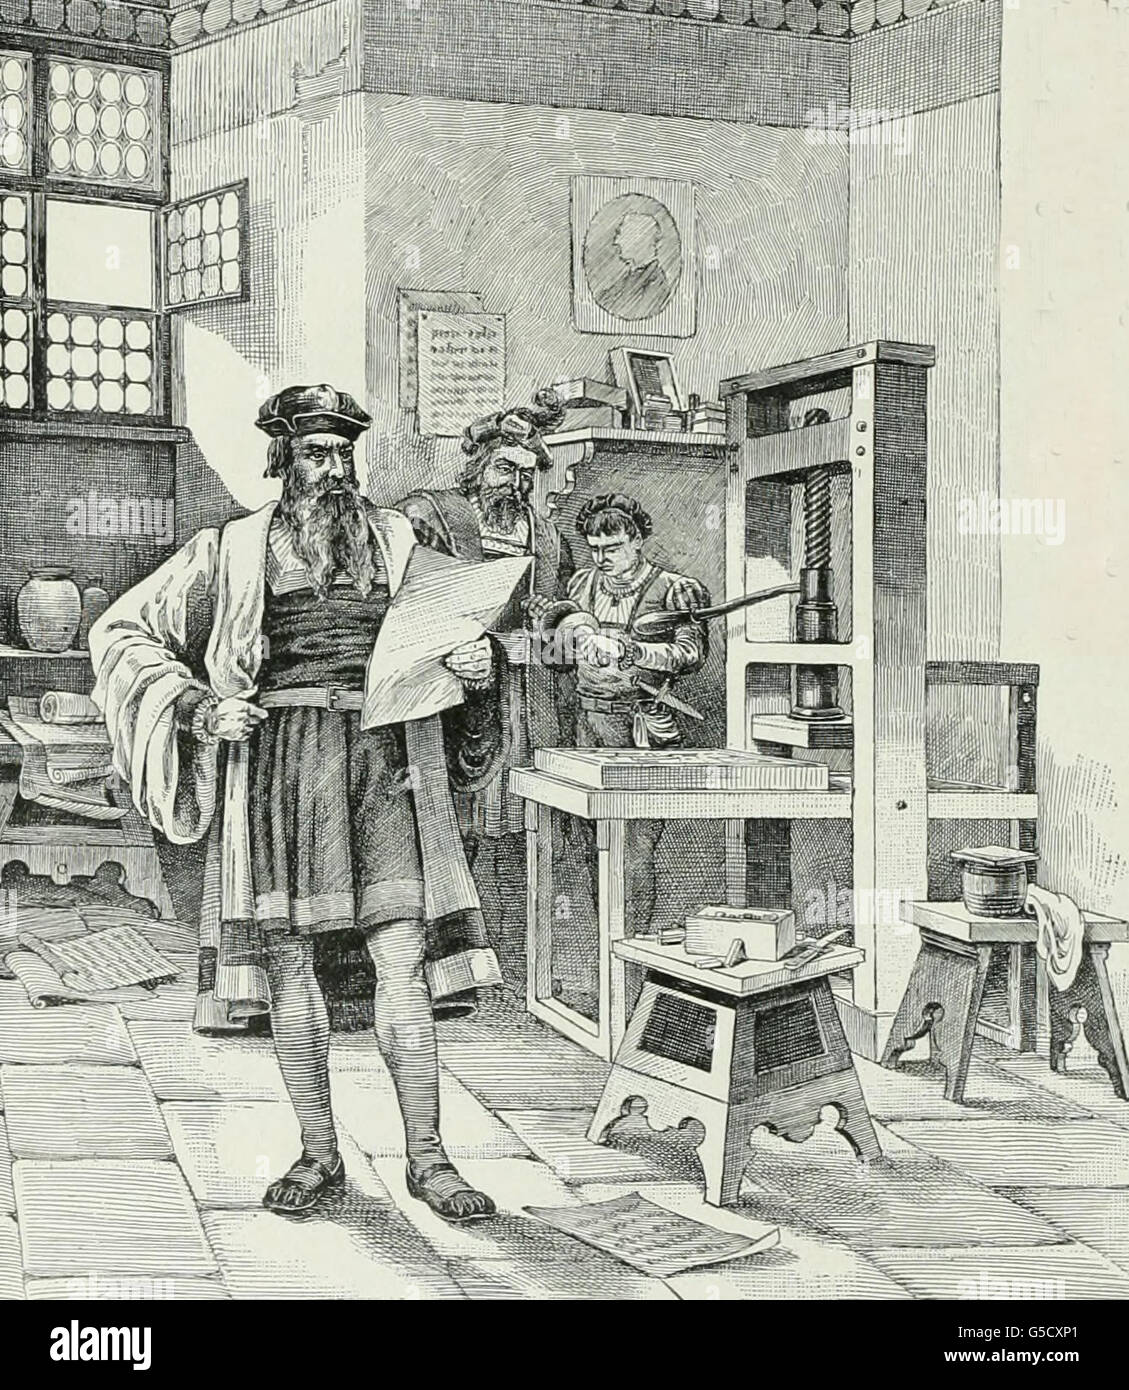 Guttenburg and Faust discover the art of printing - Stock Image